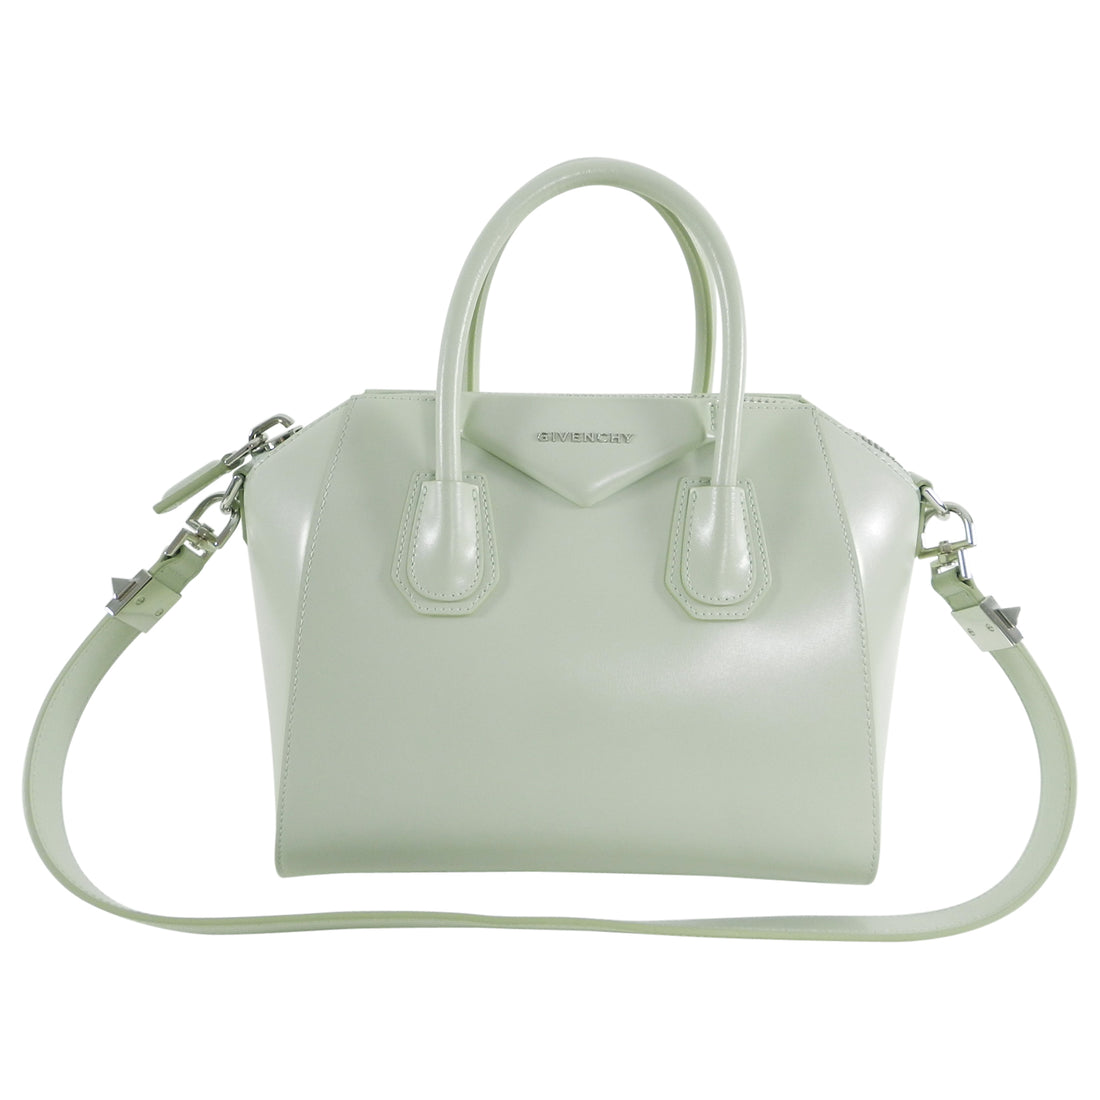 Givenchy Aqua Green Small Antigona Bag